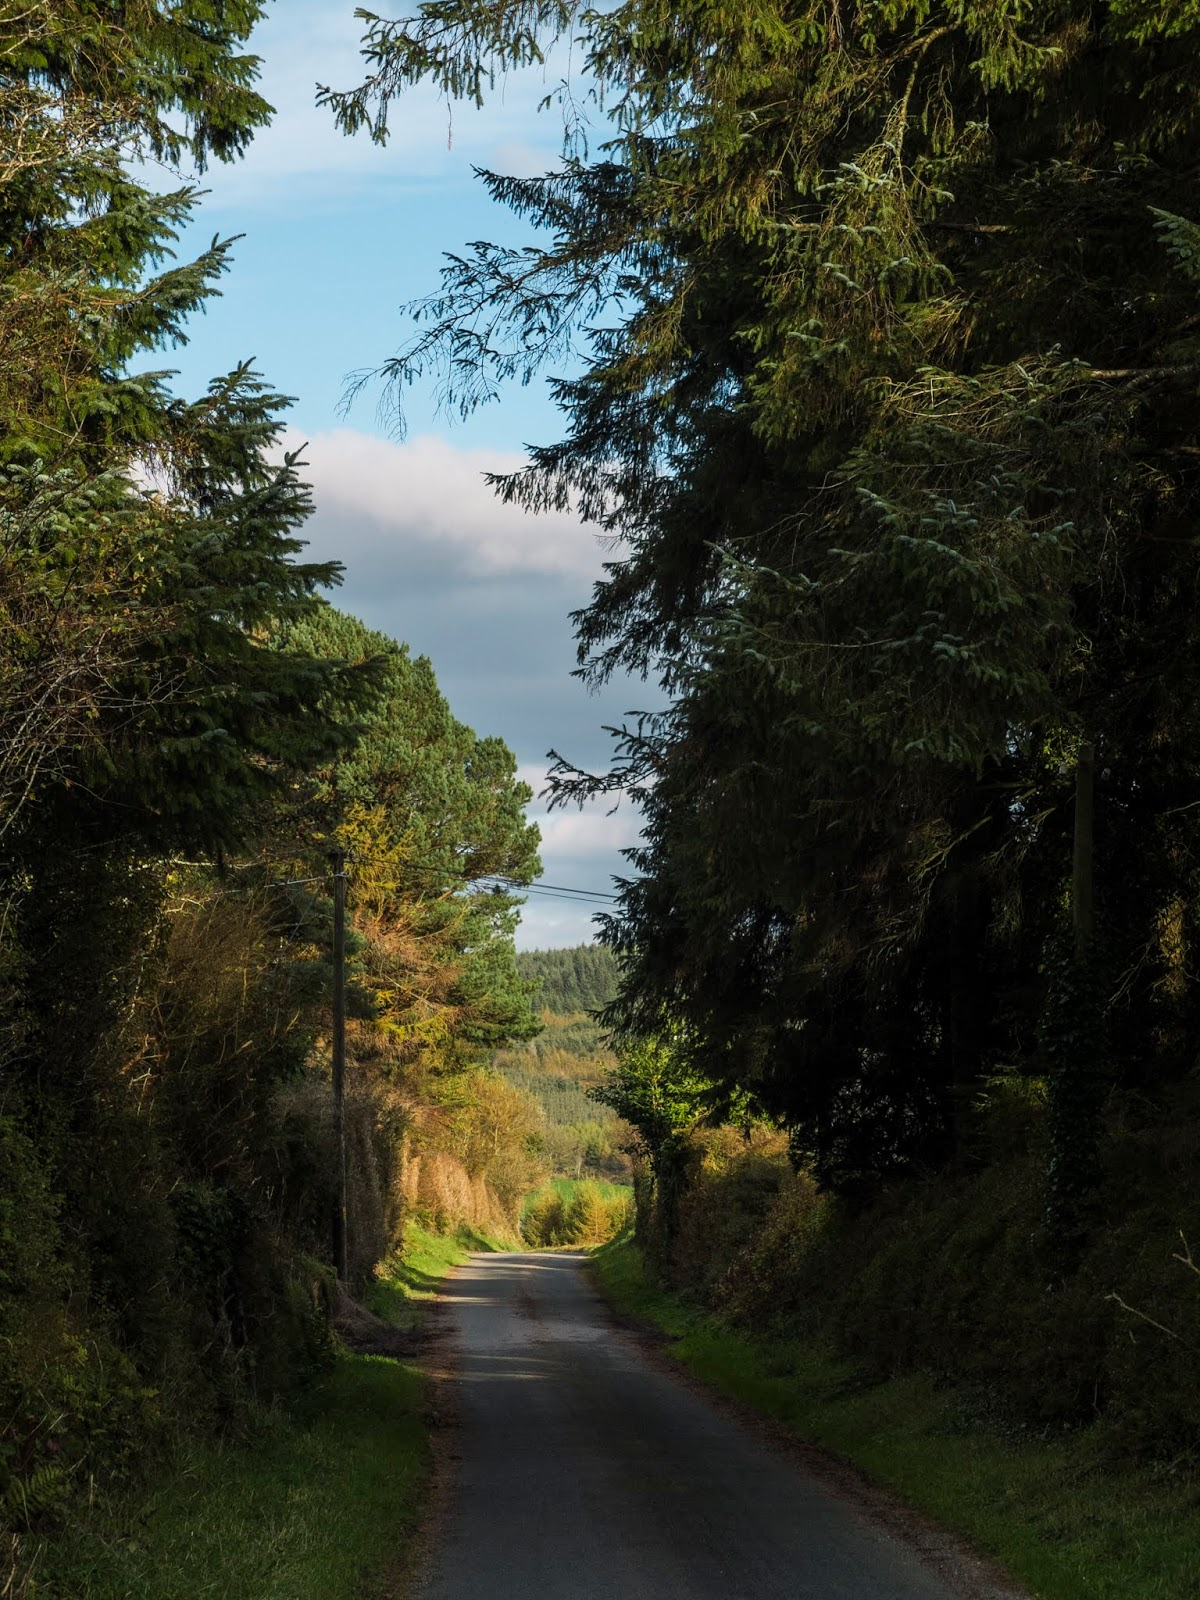 A countryside road in North Cork going from the shadows into sunlight.